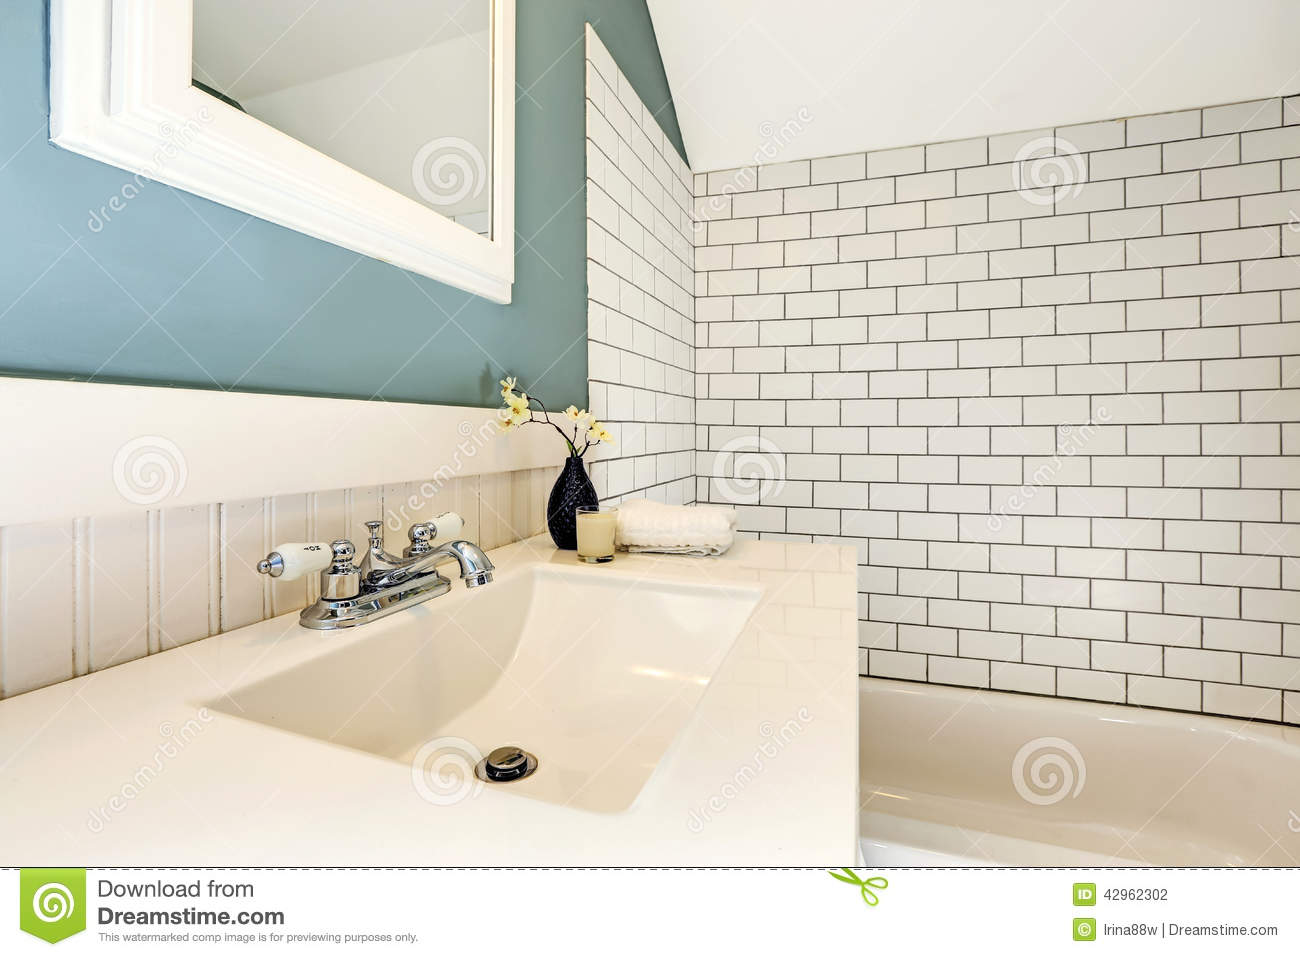 Aqua Bathroom With White Tile Wall Trim. Stock Photo - Image of ...